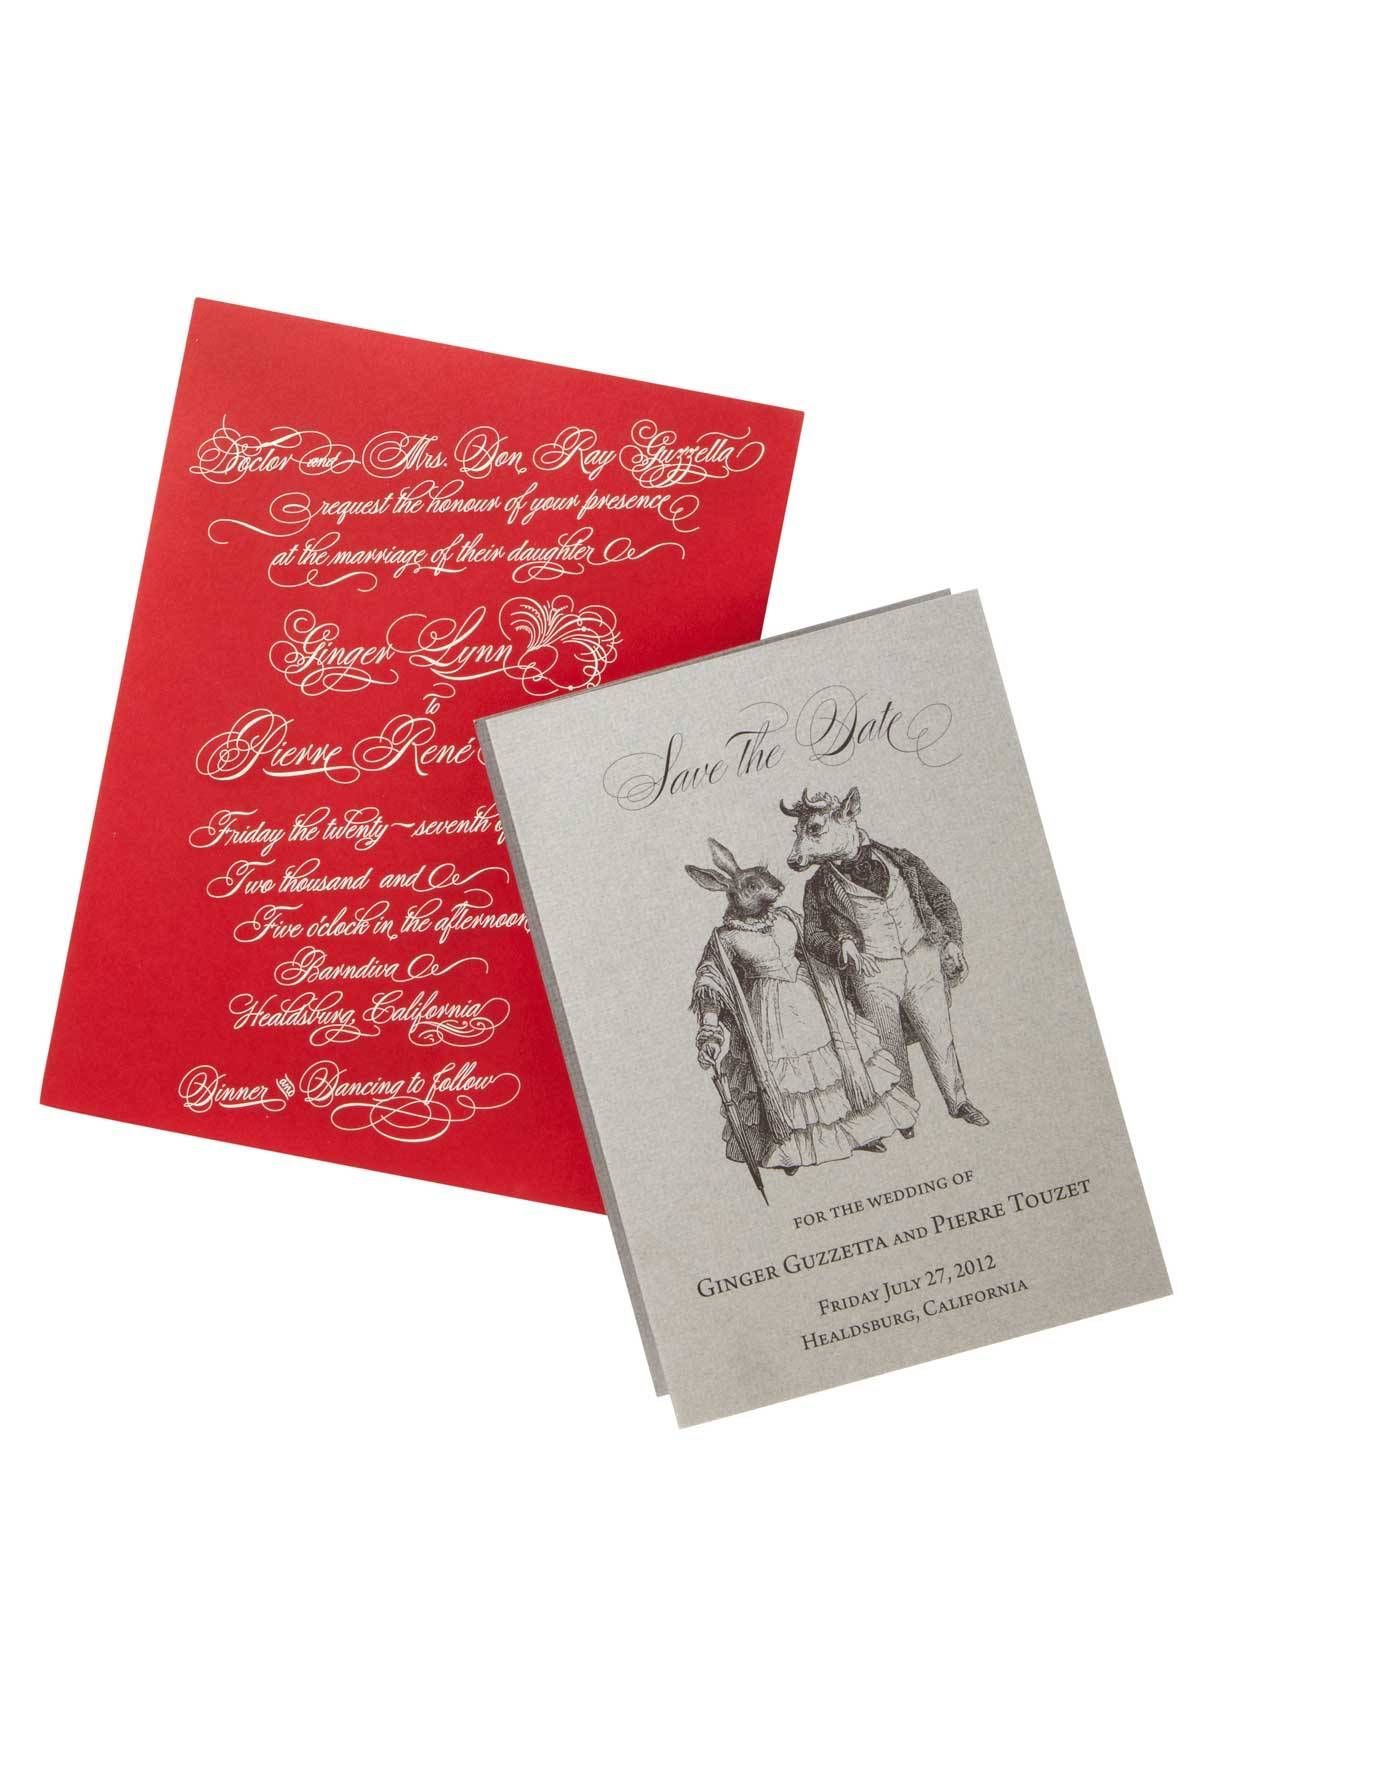 Best Wedding Invitations - Classic Wedding Invitation Styles